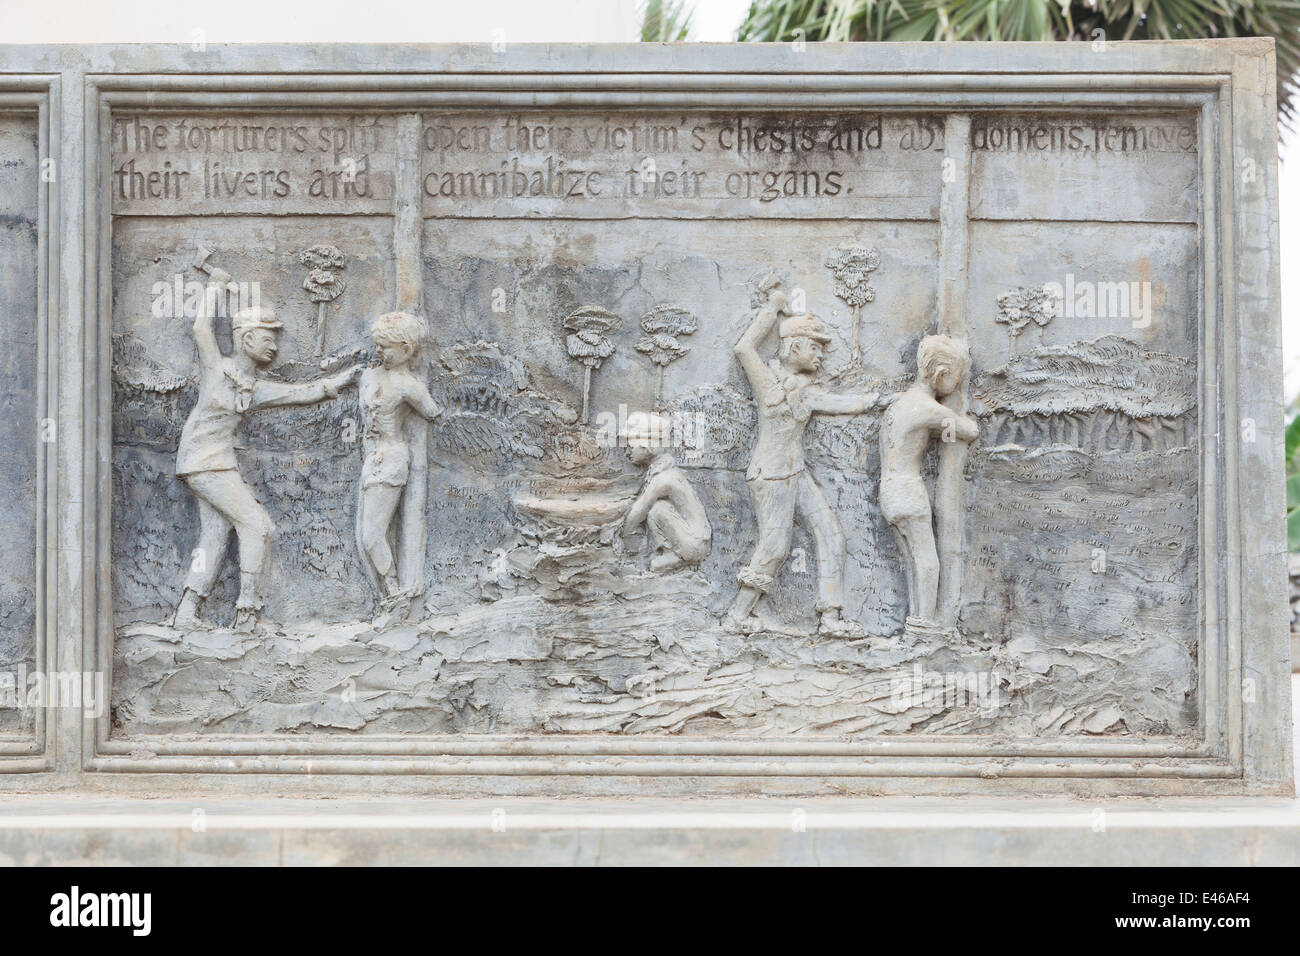 Bas reliefs at a memorial monument depicting the atrocities of the khmer rouge at Wat Samrong Knong near Battambang, - Stock Image